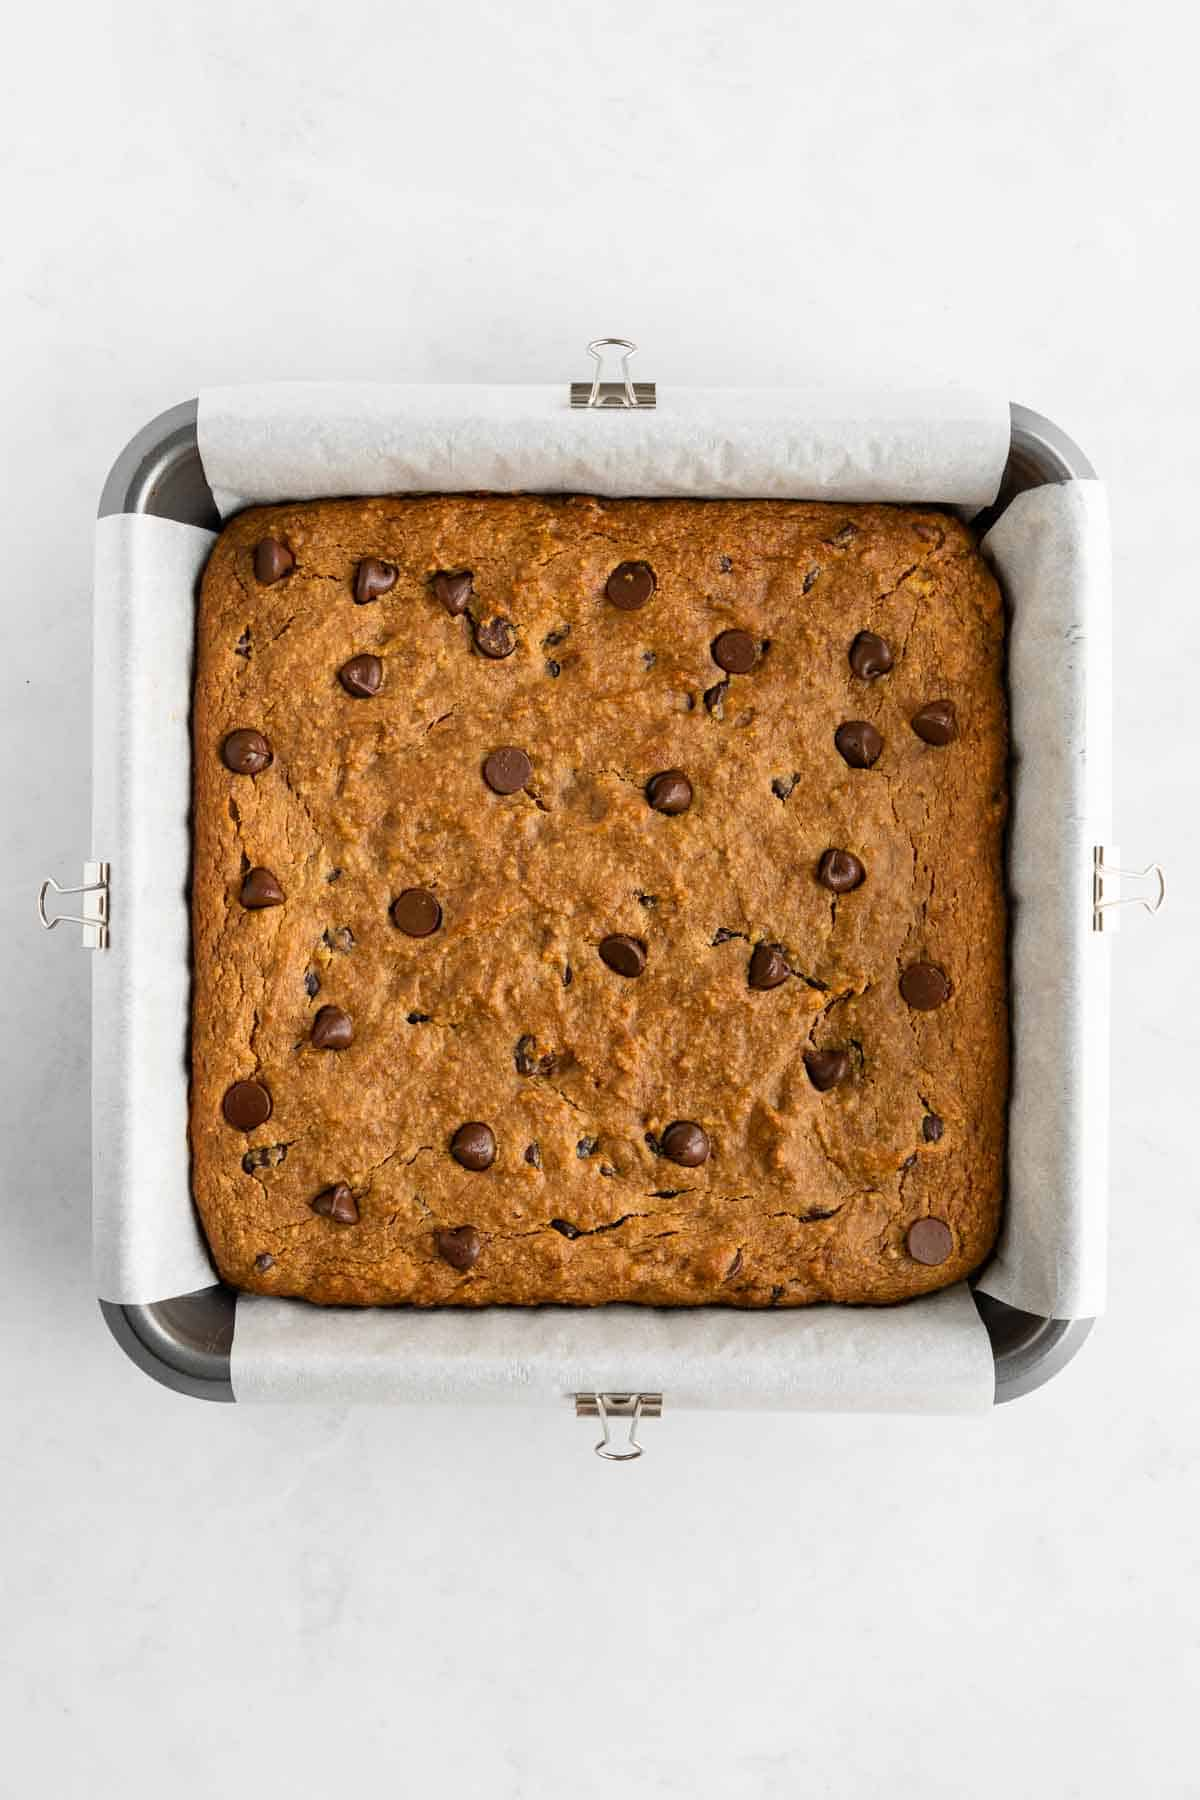 baked healthy banana bars with chocolate chips in a square baking dish